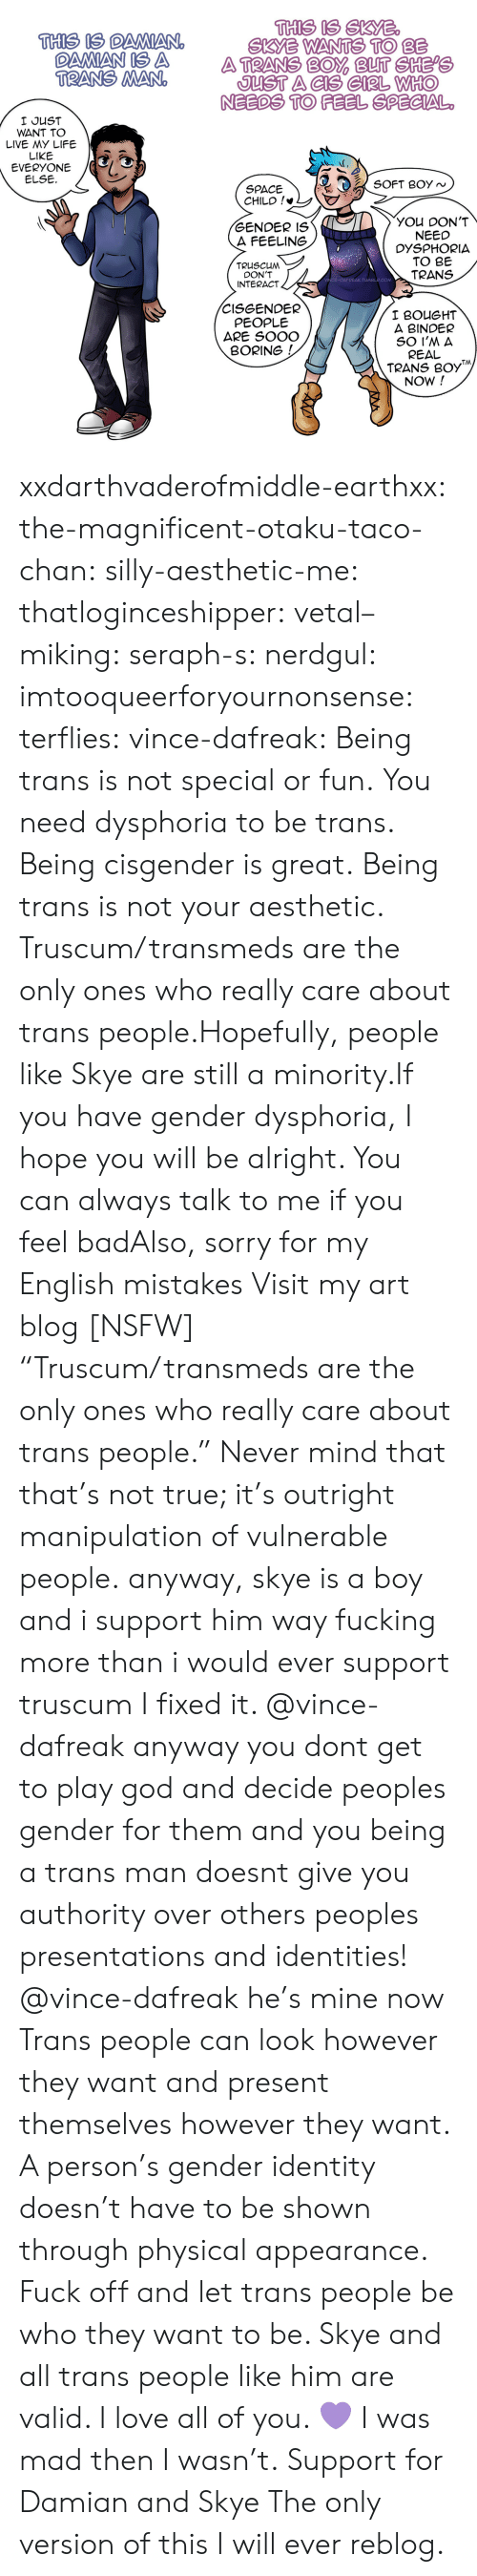 """Identities: THIS IS SKYB  SKYE WANTS TO BE  THIS IS DAMIANO  OAMAN IS A ATRANS BO BUT CHEPe  TRANS MAN  JUST A CIS GIRL WHHO  NEEDS TO FEEL SPECIAL  I JUST  WANT TO  LIVE MY LIFE  LIKE  EVERYONE /G  ELSE  SPACE  CHILD !*  YOU DON'T  NEED  DYSPHORIA  TO BE  TRANS  GENDER IS  A FEELING  TRUSCUM  DON'T  INTERACT  -DAFREAK.TUMBLR.COM  CISGENDER  PEOPLE  ARE SOOO  I BOUGHT  A BINDER  BORING  REAL  TRANS B0y  NOW! xxdarthvaderofmiddle-earthxx:  the-magnificent-otaku-taco-chan:  silly-aesthetic-me:  thatloginceshipper:   vetal–miking:  seraph-s:  nerdgul:  imtooqueerforyournonsense:  terflies:   vince-dafreak:  Being trans is not special or fun. You need dysphoria to be trans. Being cisgender is great. Being trans is not your aesthetic. Truscum/transmeds are the only ones who really care about trans people.Hopefully, people like Skye are still a minority.If you have gender dysphoria, I hope you will be alright. You can always talk to me if you feel badAlso, sorry for my English mistakes  Visit my art blog [NSFW]    """"Truscum/transmeds are the only ones who really care about trans people."""" Never mind that that's not true; it's outright manipulation of vulnerable people.   anyway, skye is a boy and i support him way fucking more than i would ever support truscum  I fixed it.   @vince-dafreak anyway you dont get to play god and decide peoples gender for them and you being a trans man doesnt give you authority over others peoples presentations and identities!   @vince-dafreak he's mine now   Trans people can look however they want and present themselves however they want. A person's gender identity doesn't have to be shown through physical appearance. Fuck off and let trans people be who they want to be. Skye and all trans people like him are valid. I love all of you. 💜   I was mad then I wasn't.  Support for Damian and Skye  The only version of this I will ever reblog."""